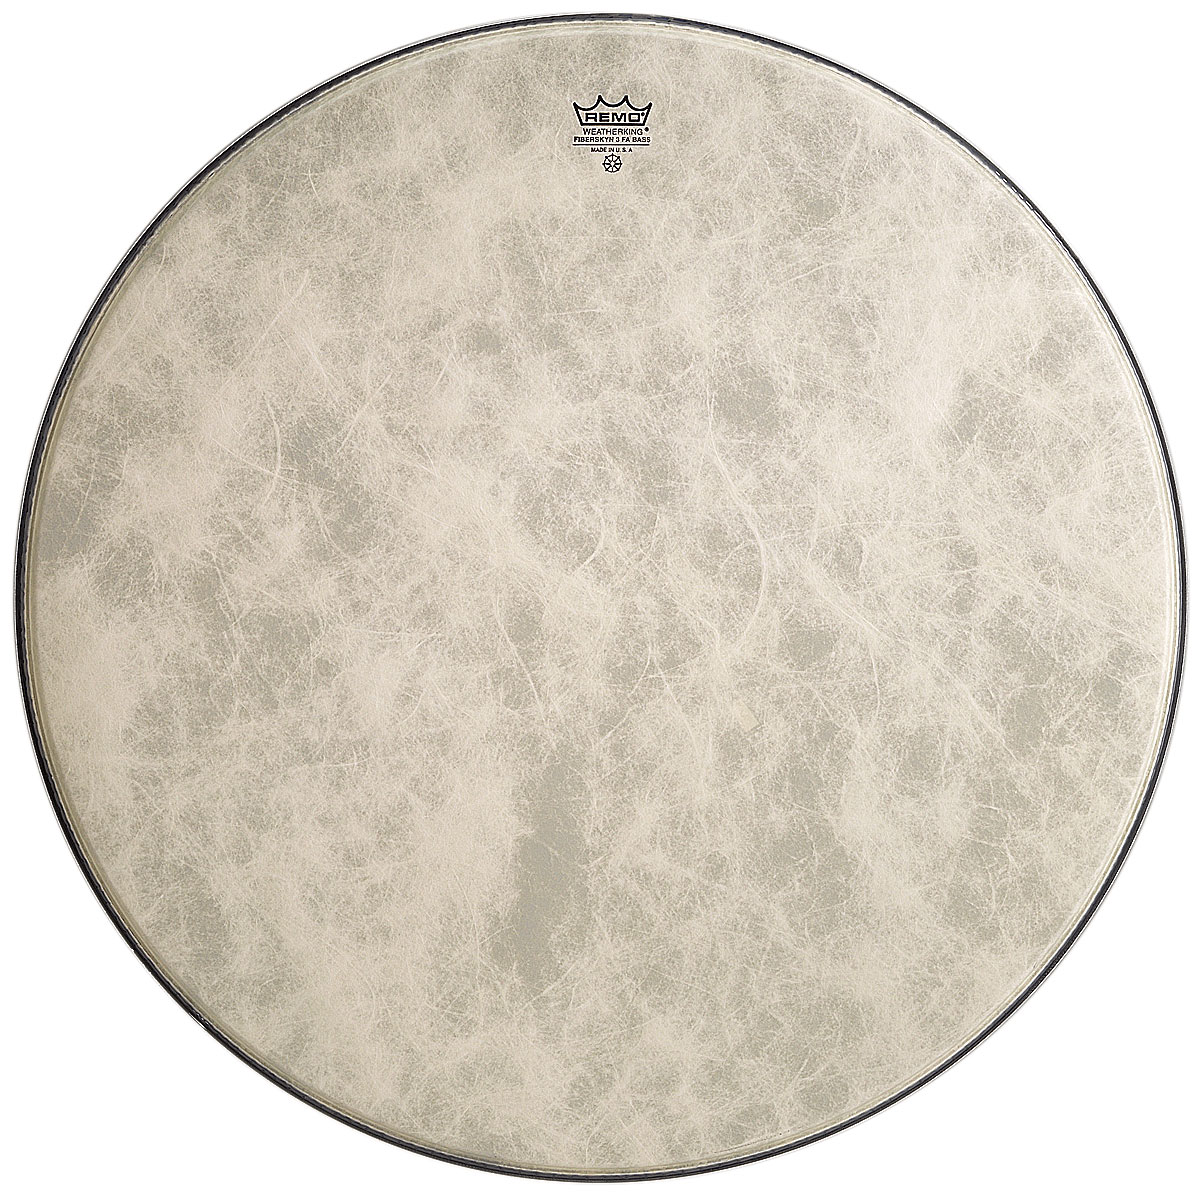 "Remo 20"" Ambassador Fiberskyn Bass Drum Head"